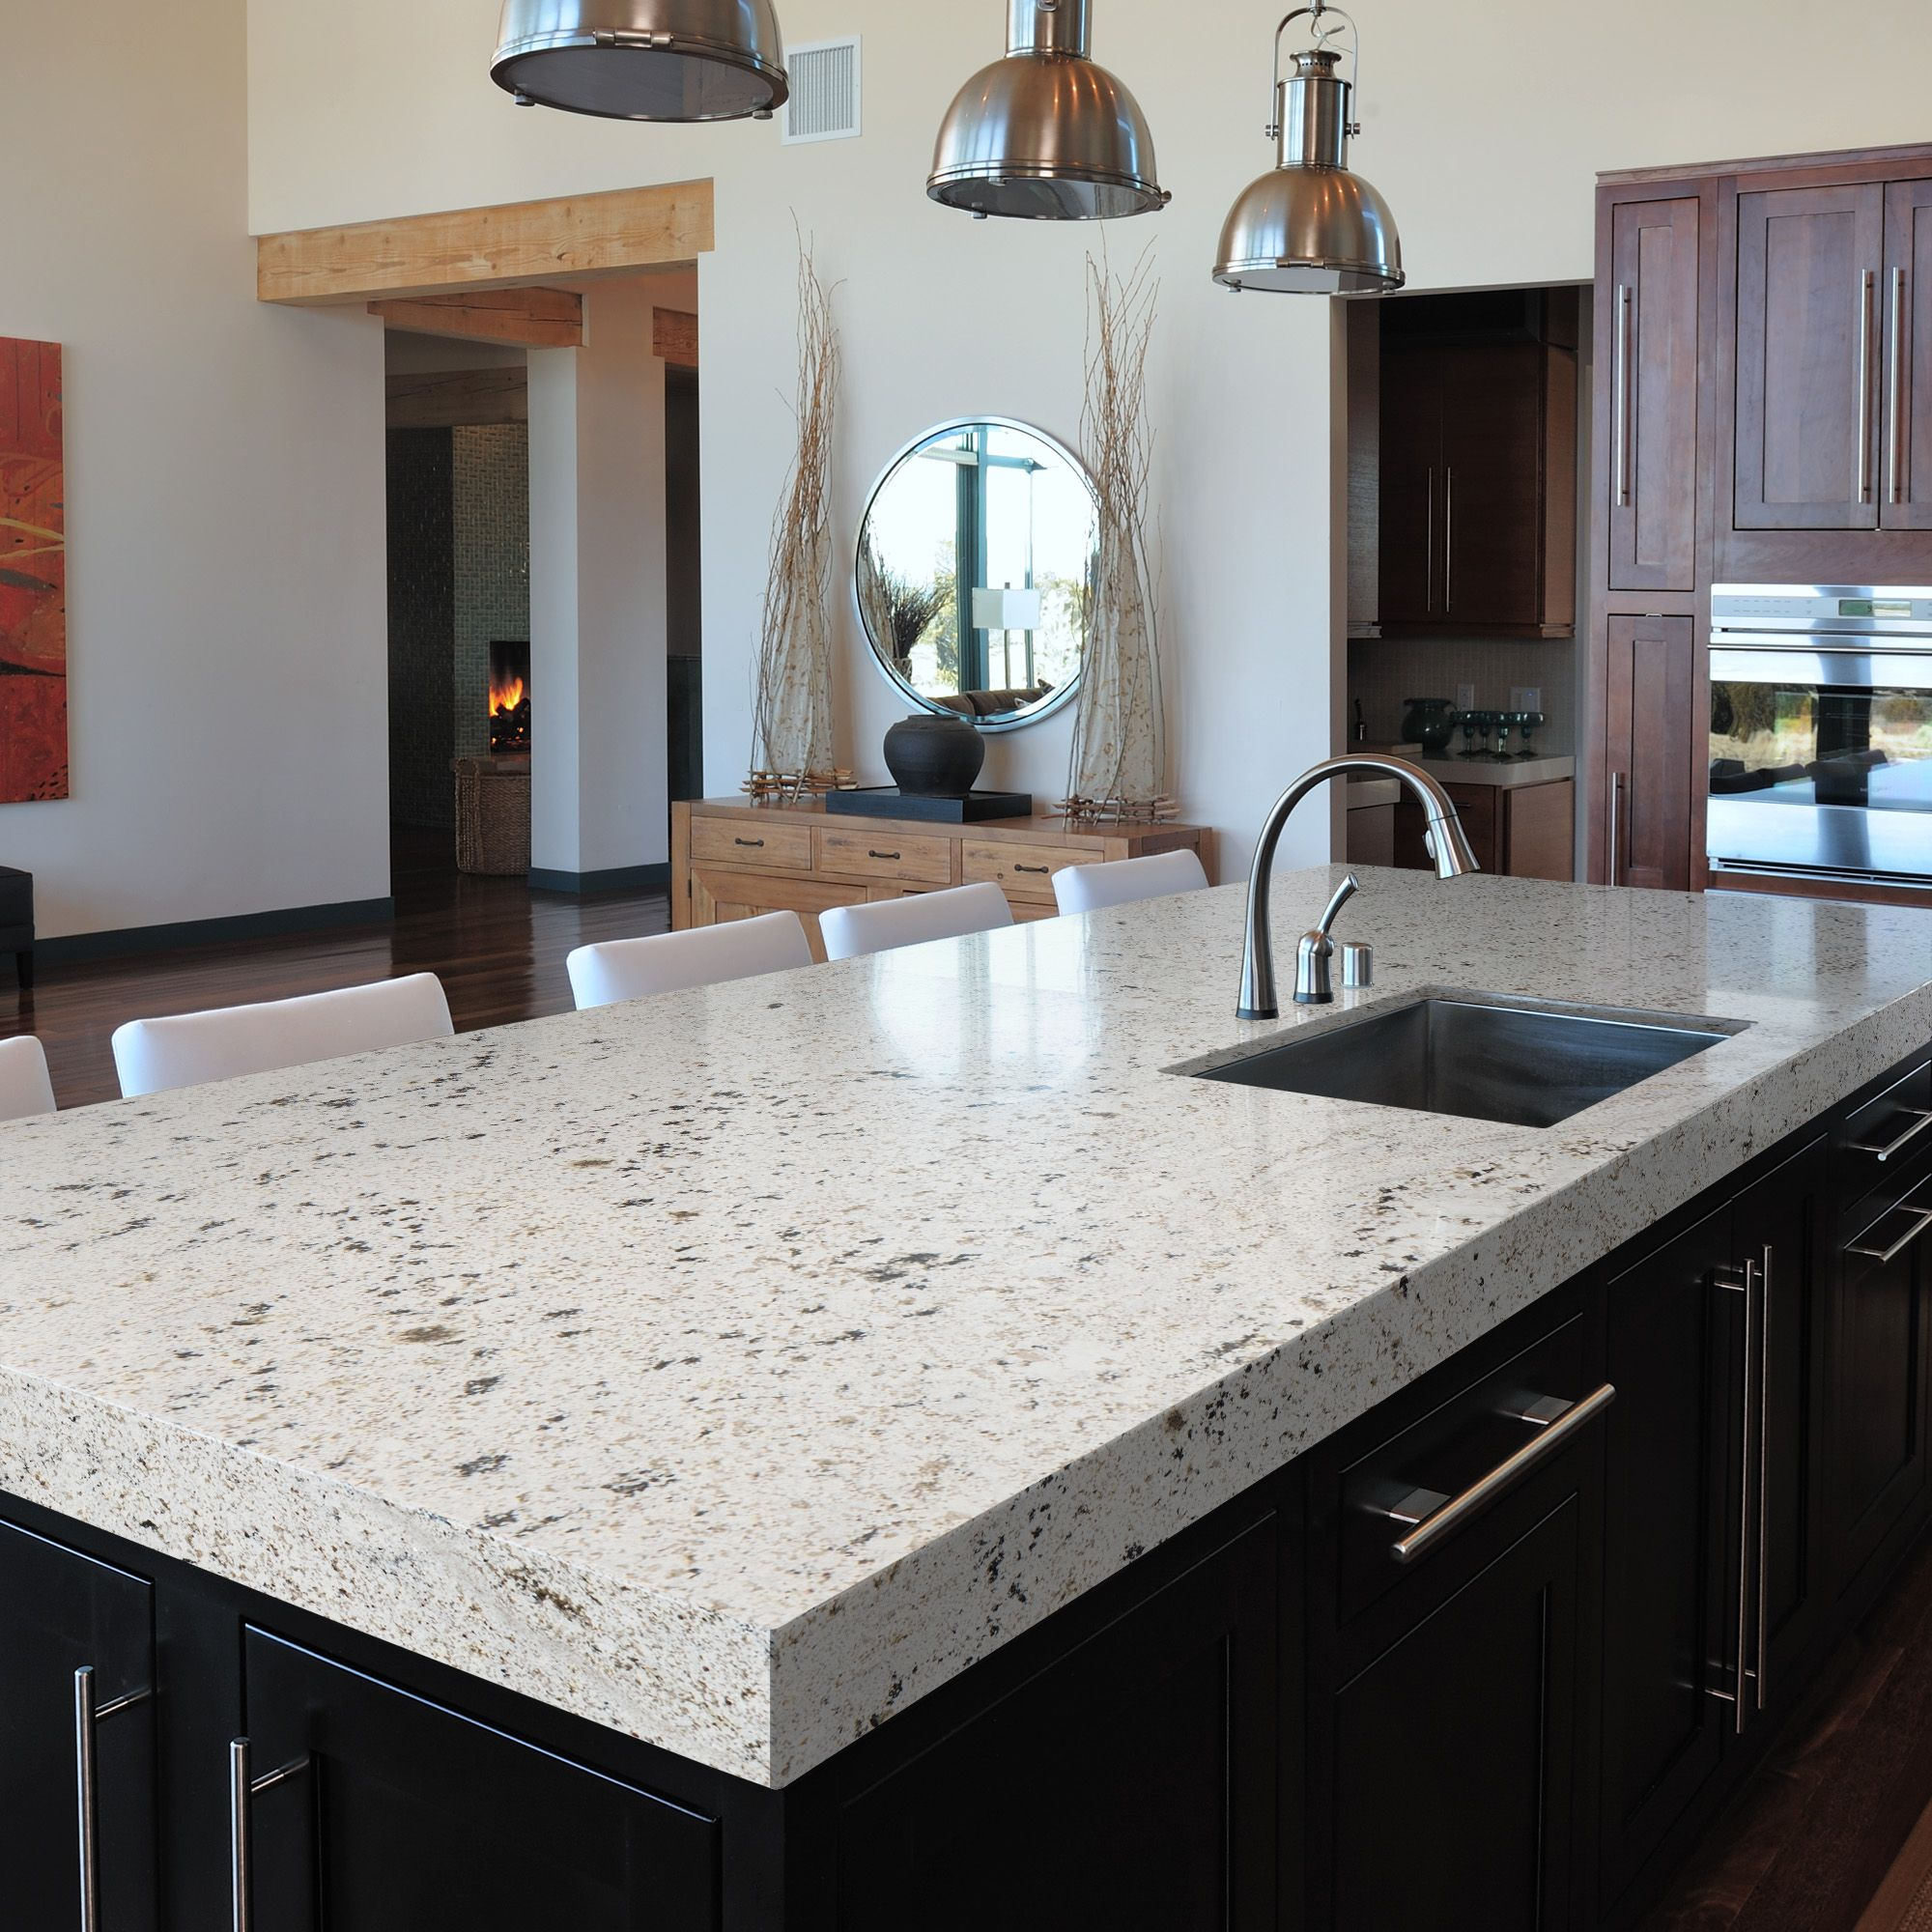 Lowes 39 sensa blanco gabrielle kitchen pinterest Lowes countertops